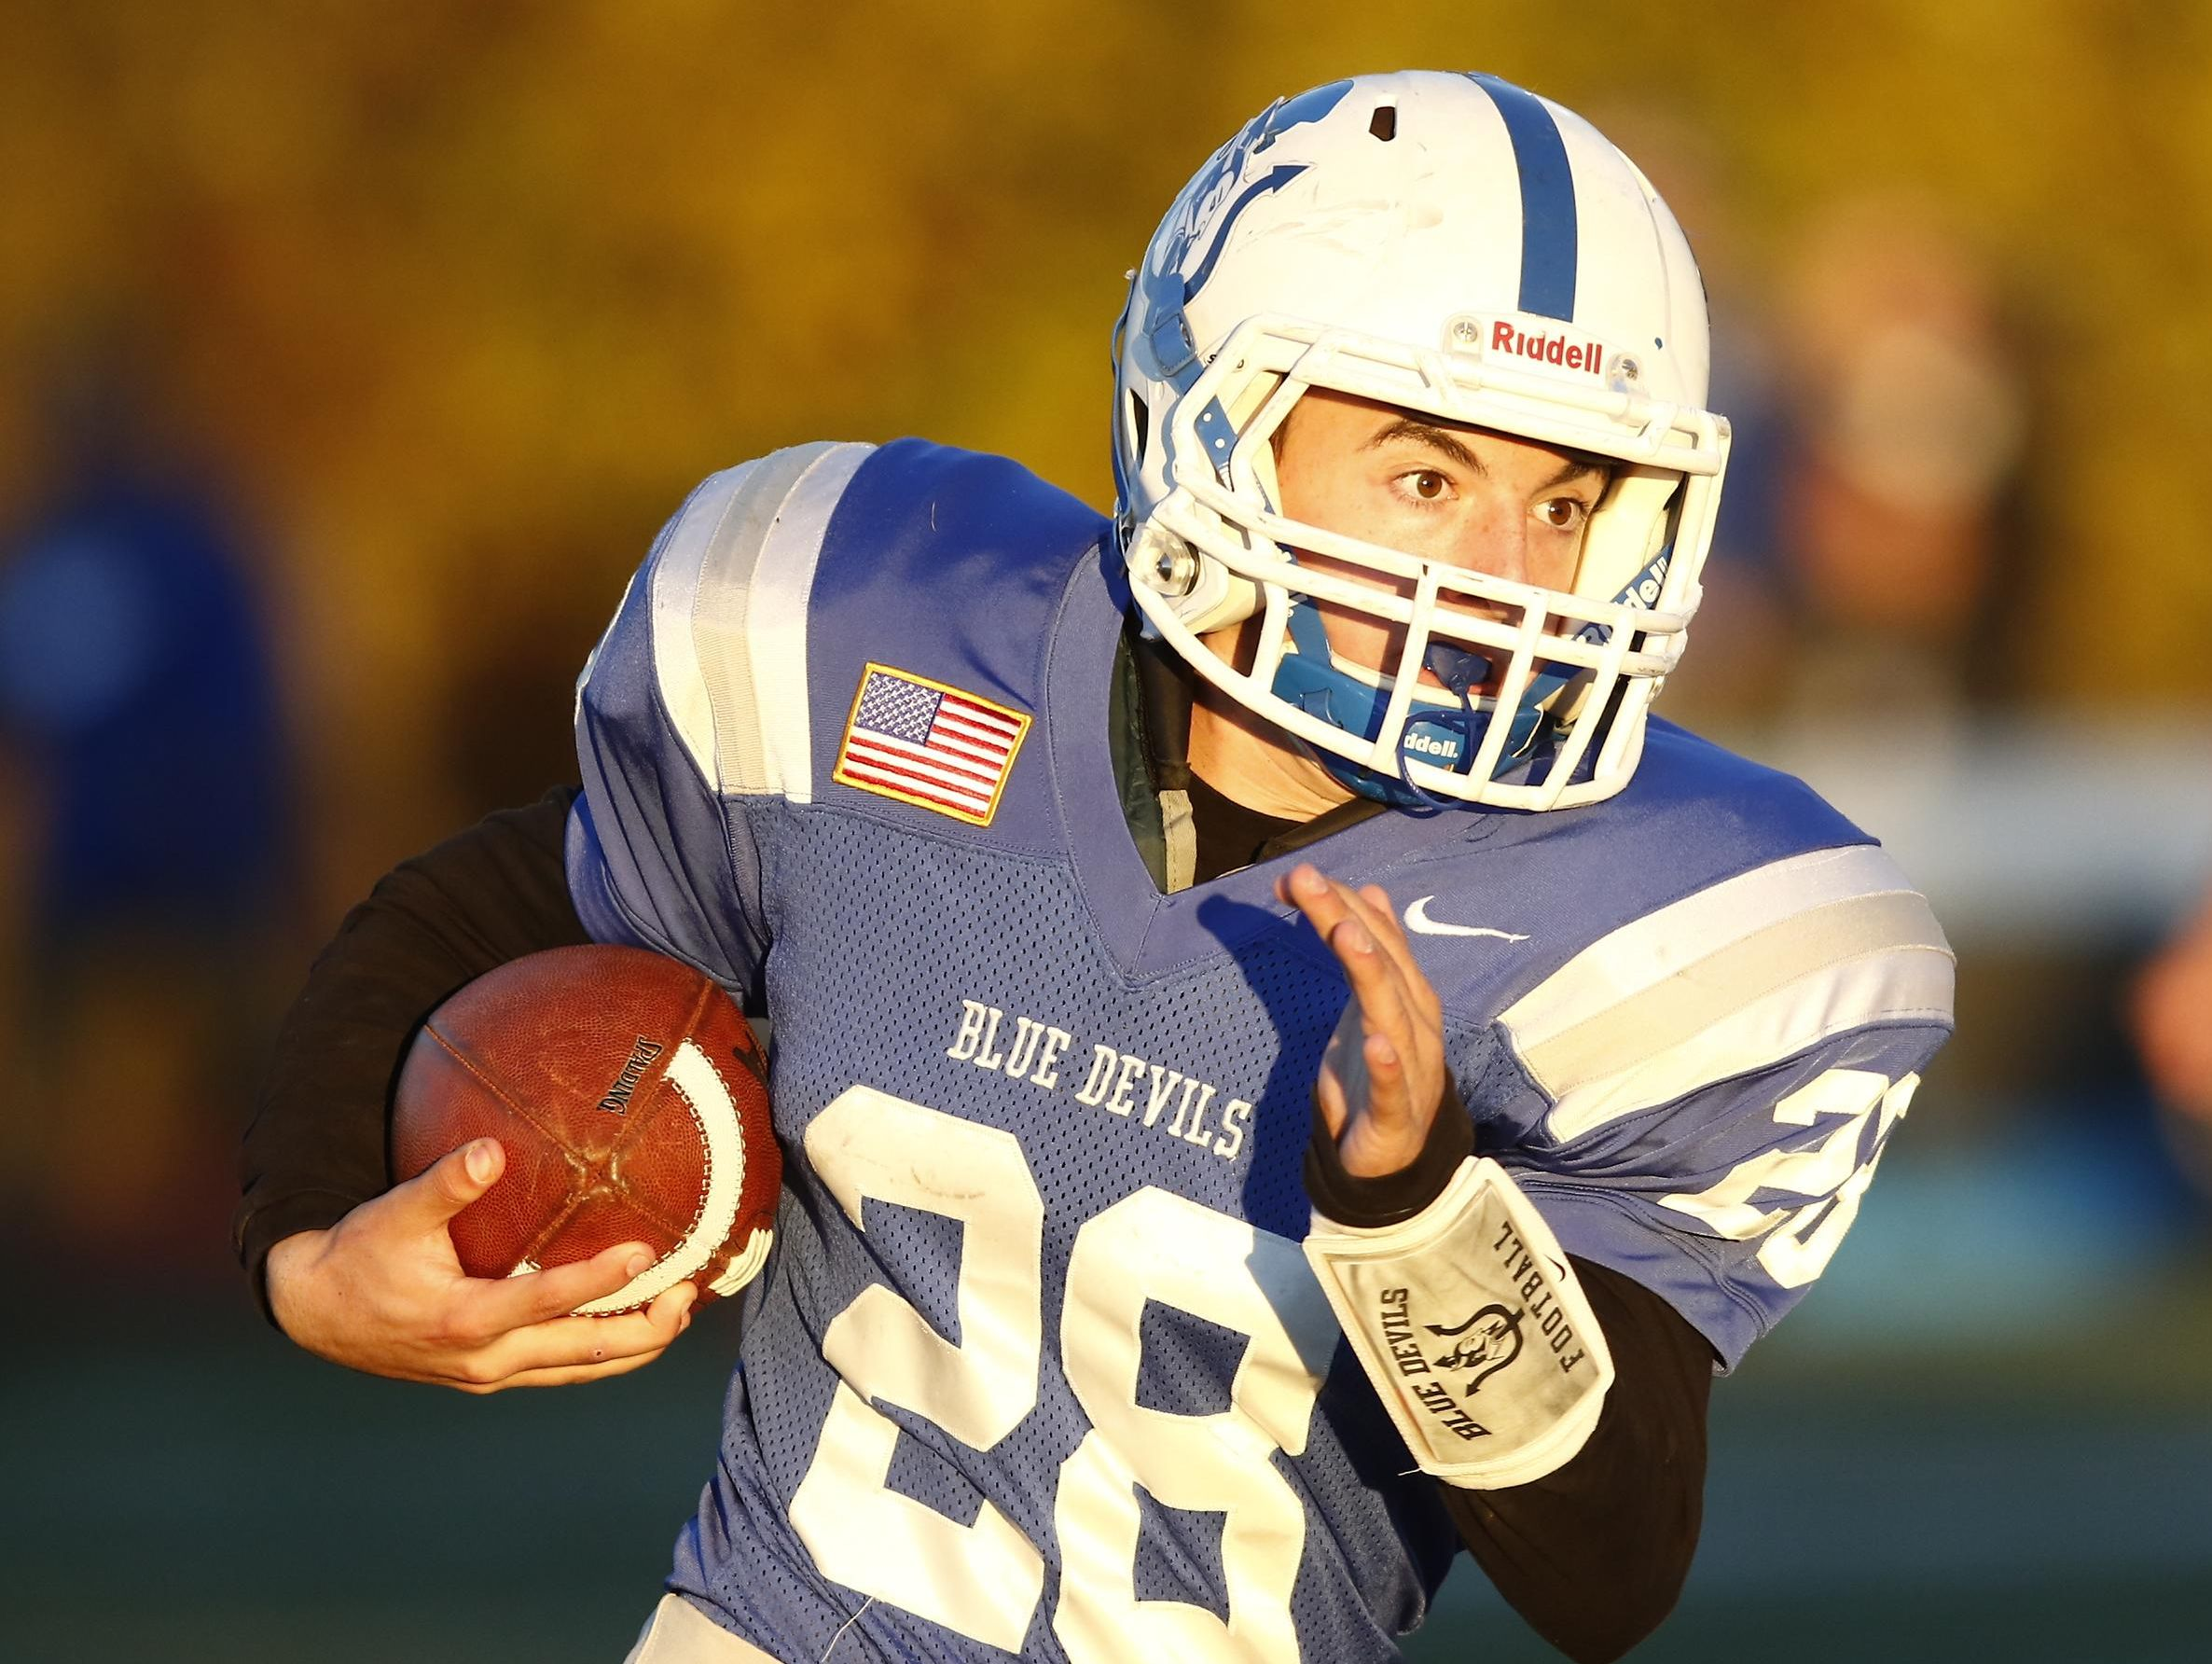 Haldane's Joe DiGregorio picks up yardage during the Blue Devils' 26-6 win over Tuckahoe in the Section 1 Class D championship game at Mahopac High School on Friday.